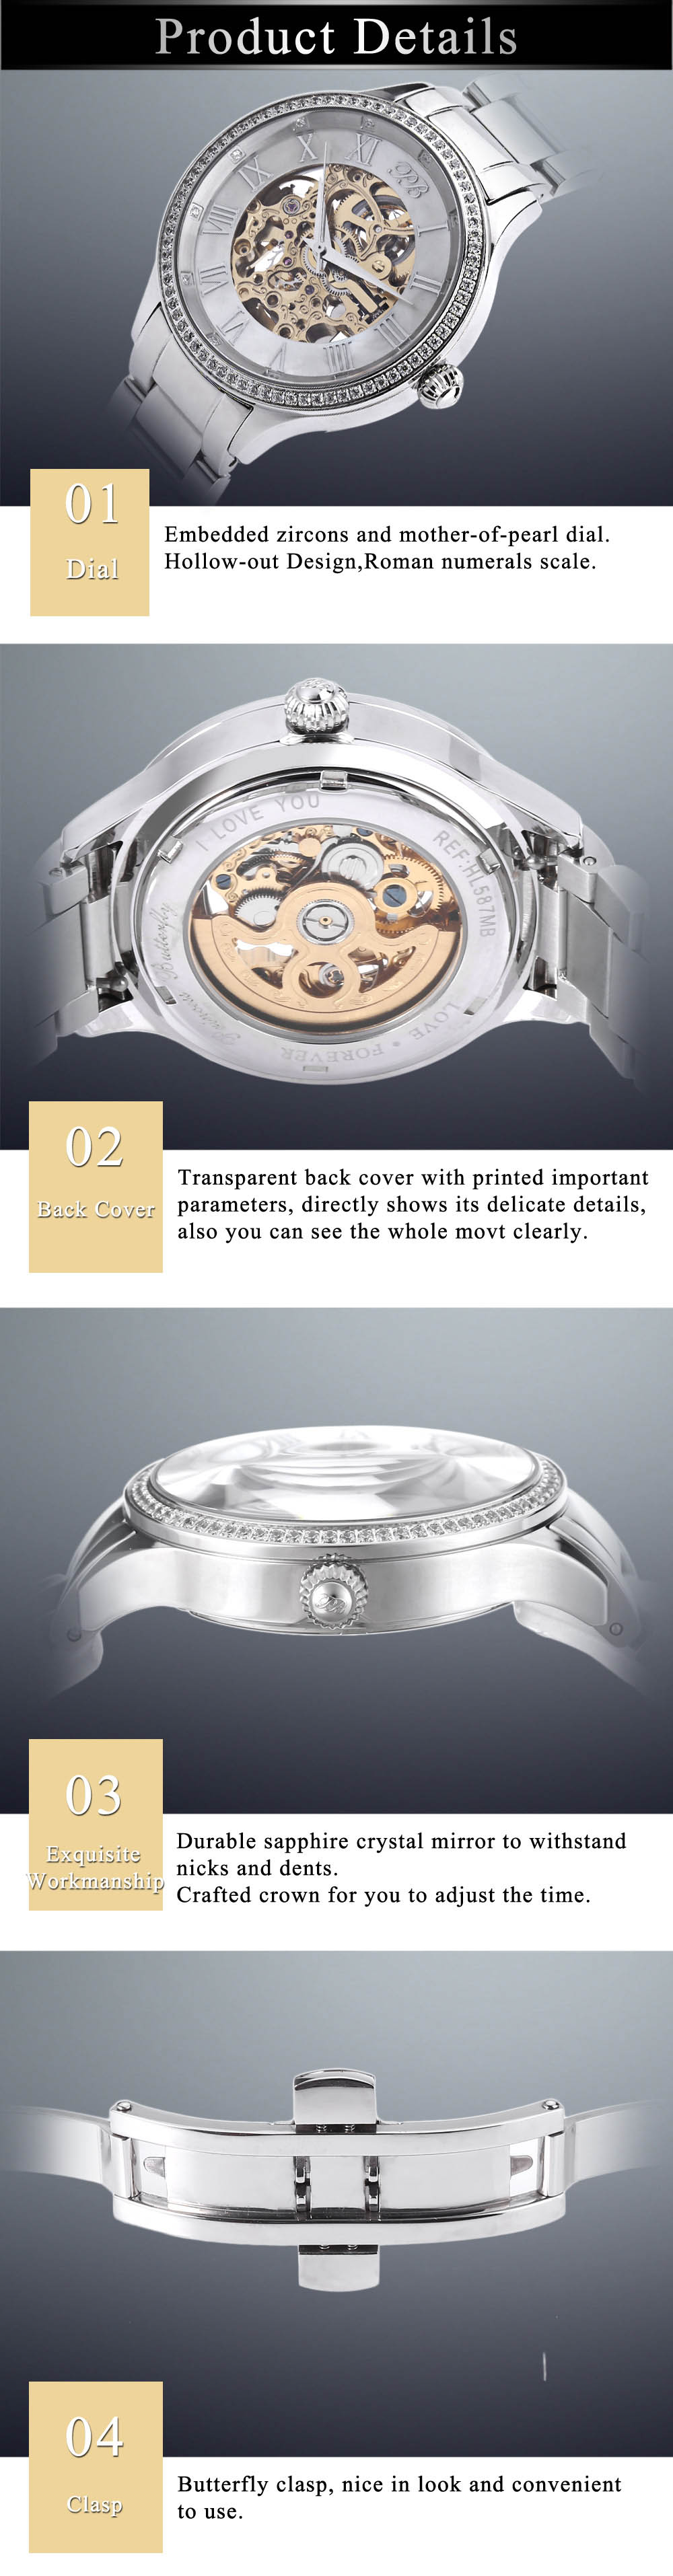 Princess Butterfly HL587MB Male Auto Mechanical Watch Zircon Dial Sapphire Crystal Mirror Wristwatch